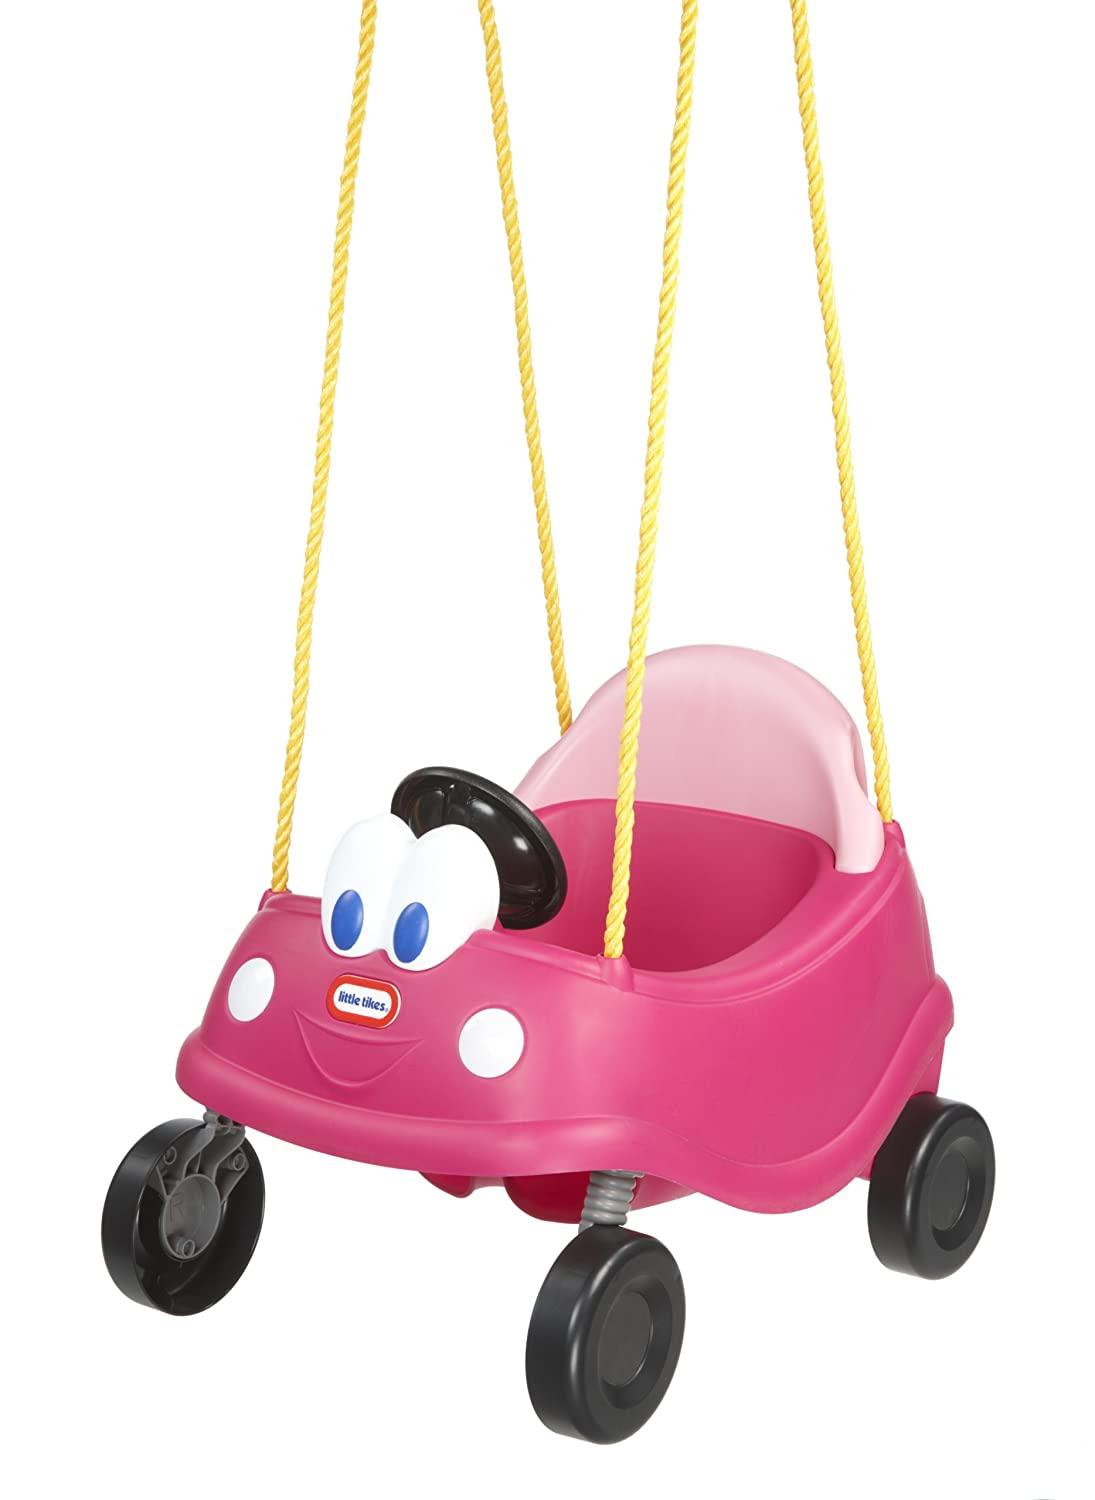 An Image of Little Tikes Princess Cozy Coupe First Swing